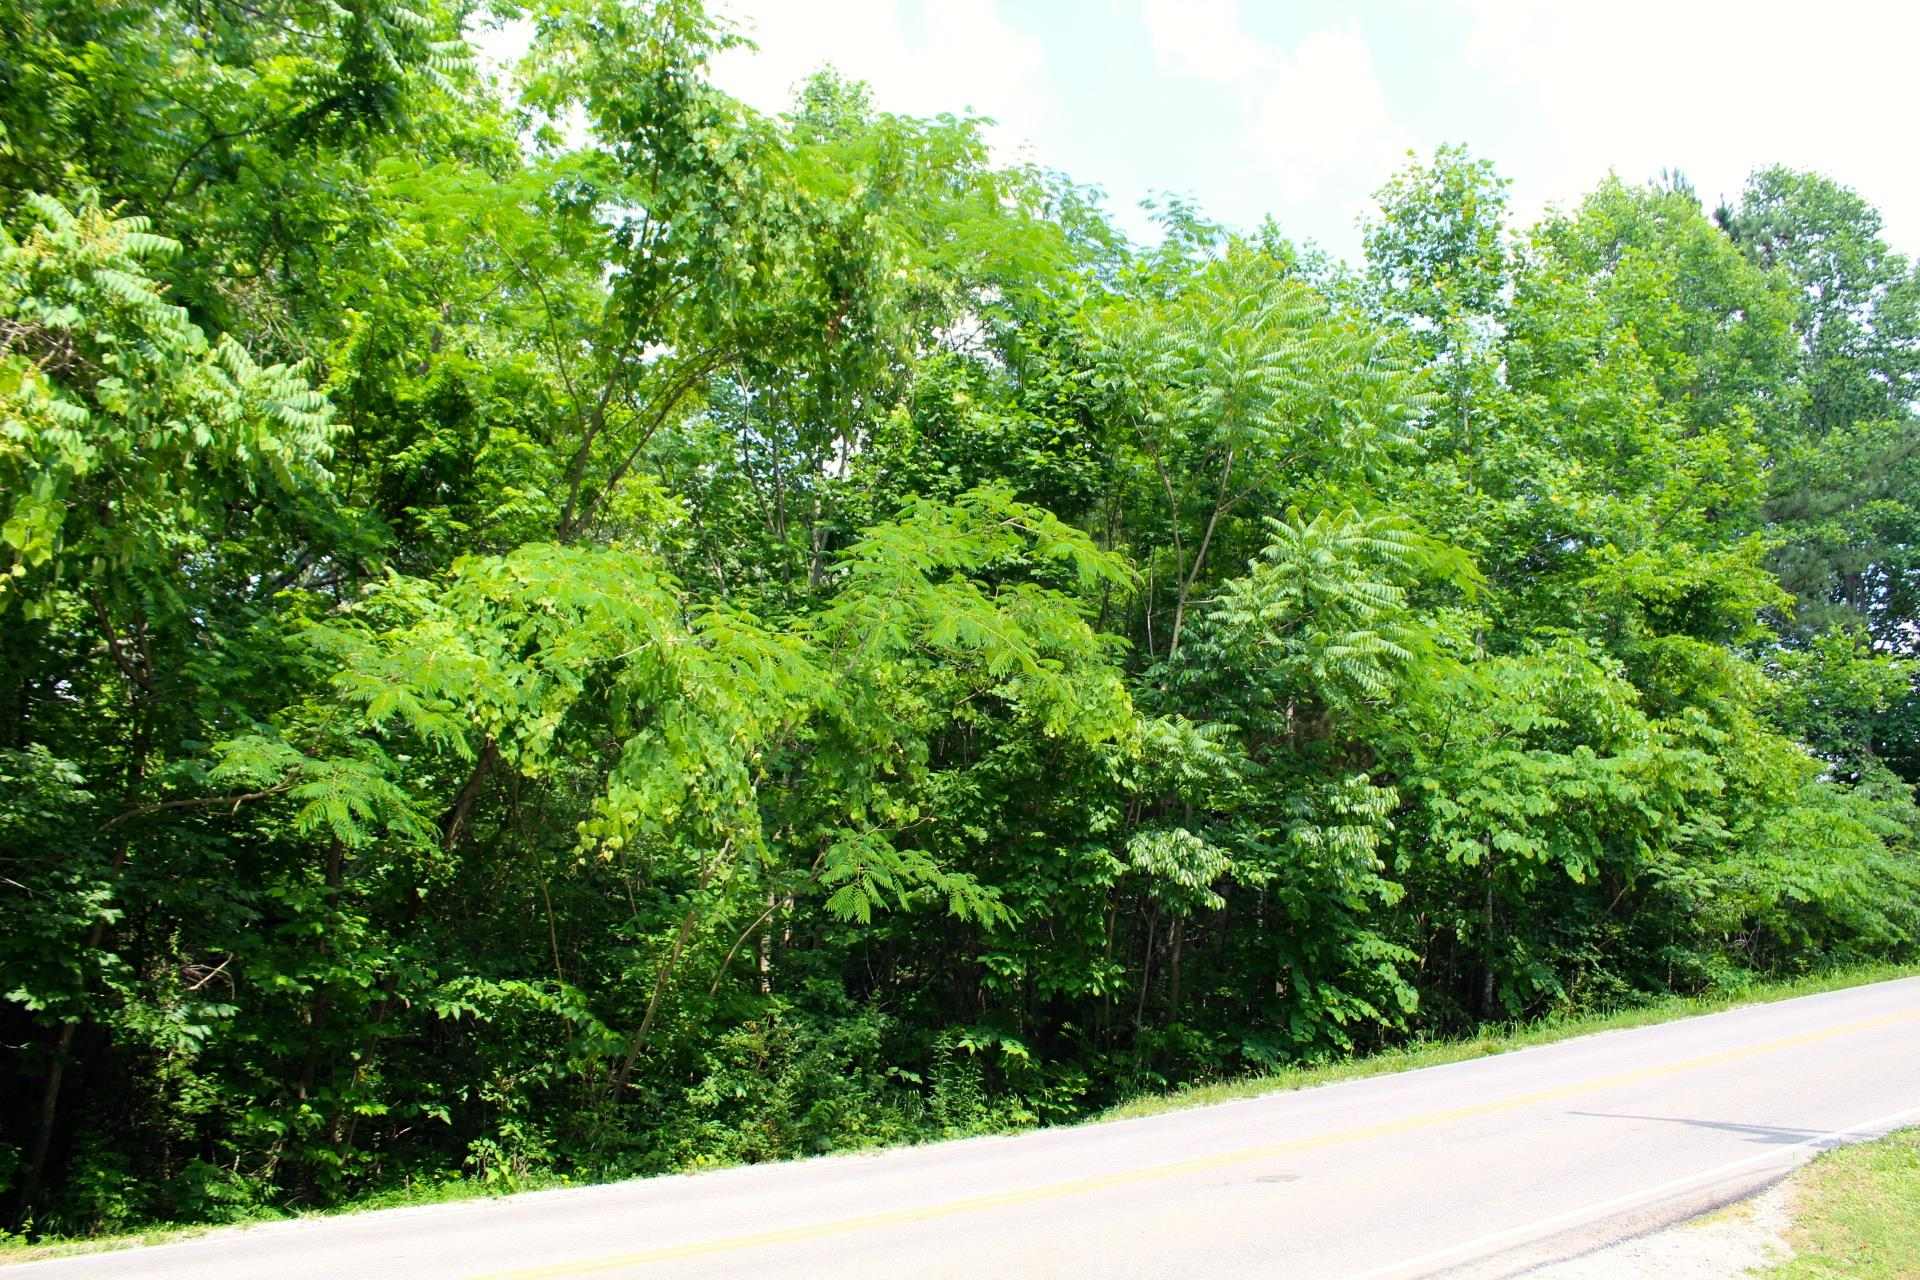 46 Old Hwy, Lyles, TN 37098 - Lyles, TN real estate listing